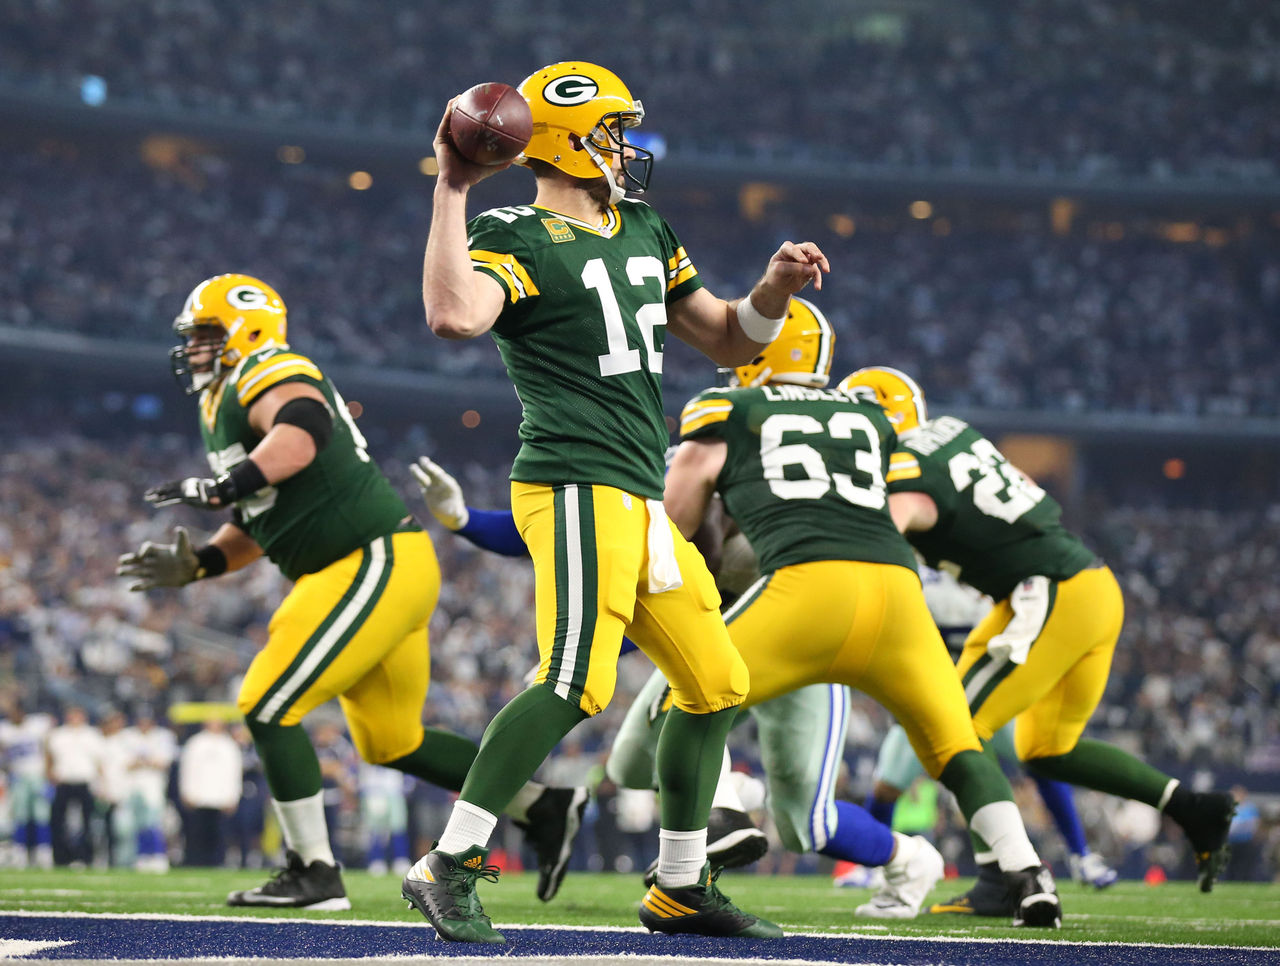 Cropped 2017 01 16t043714z 1617809586 nocid rtrmadp 3 nfl nfc divisional green bay packers at dallas cowboys